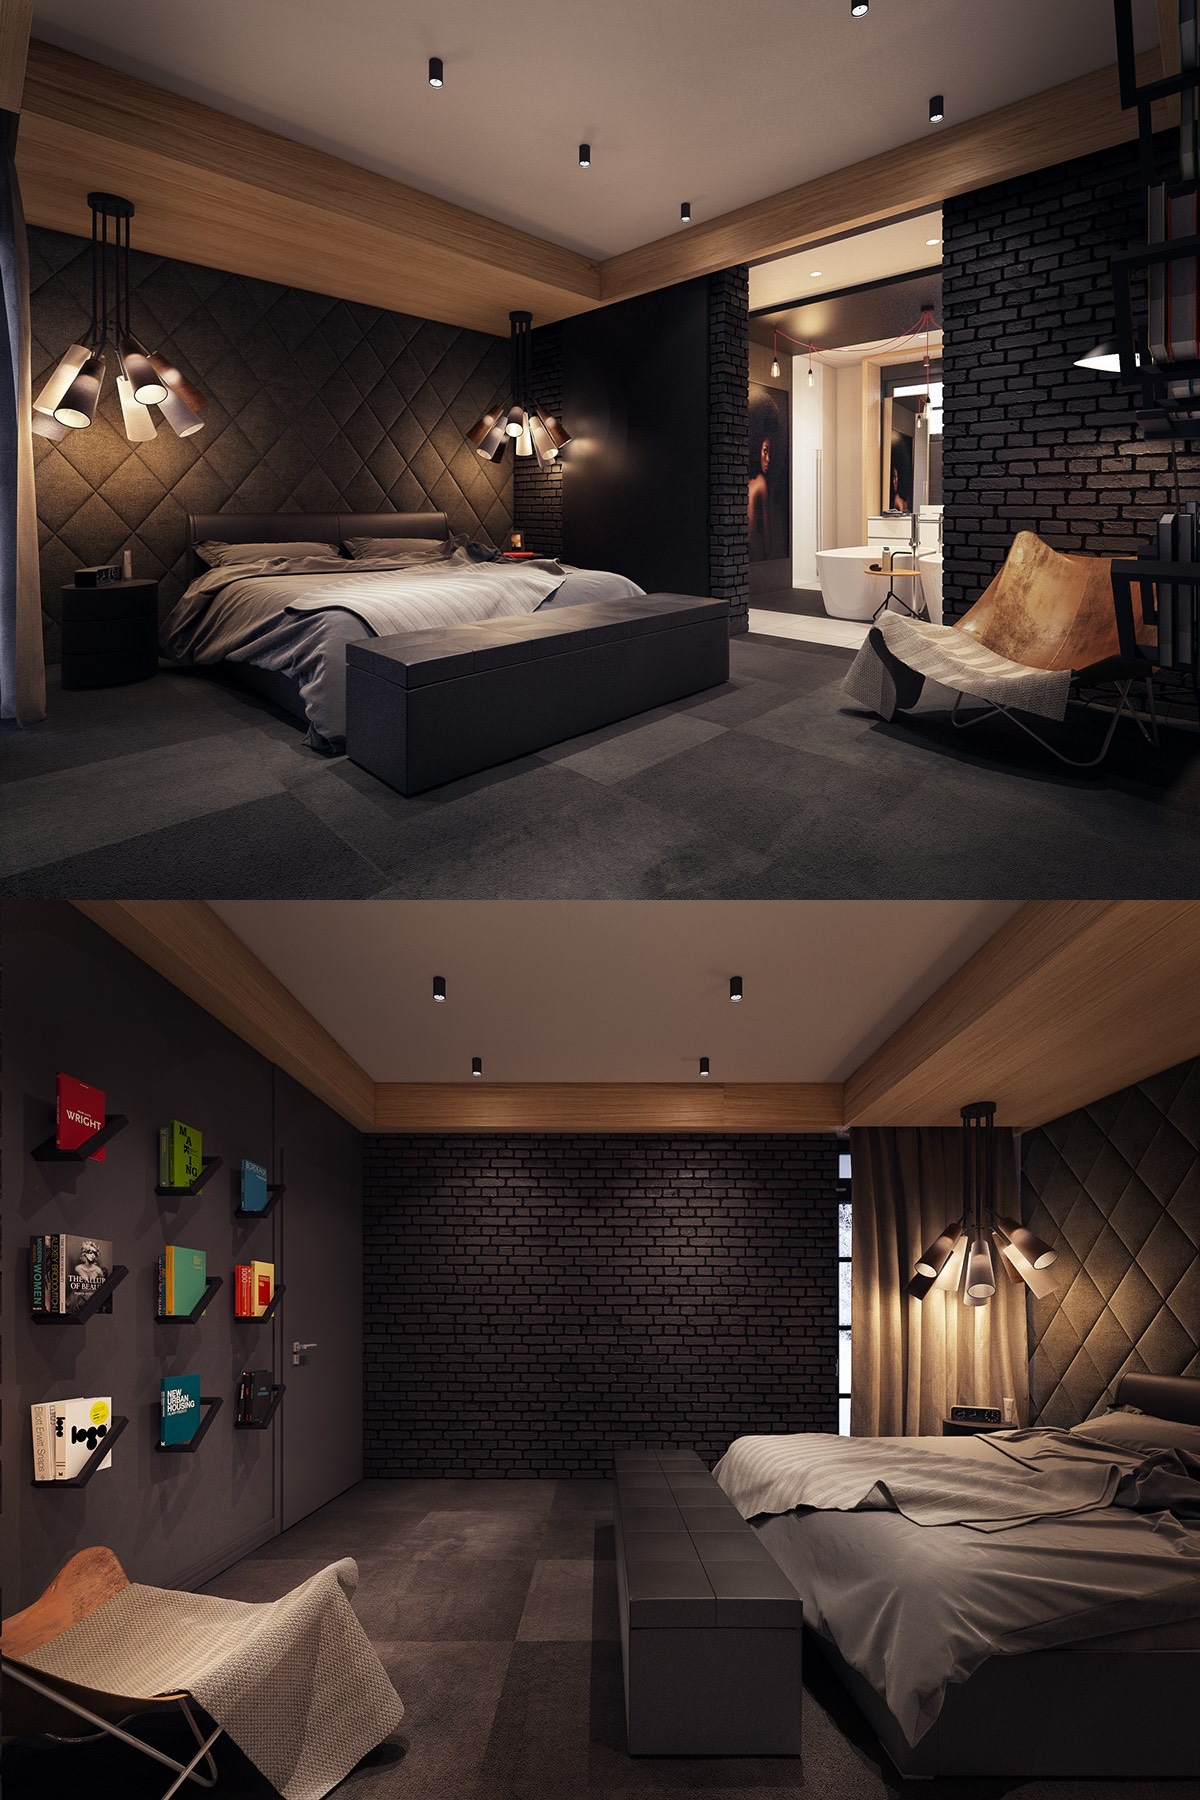 Dark Color Bedroom Decorating Ideas Shows A Luxury and Masculine ...